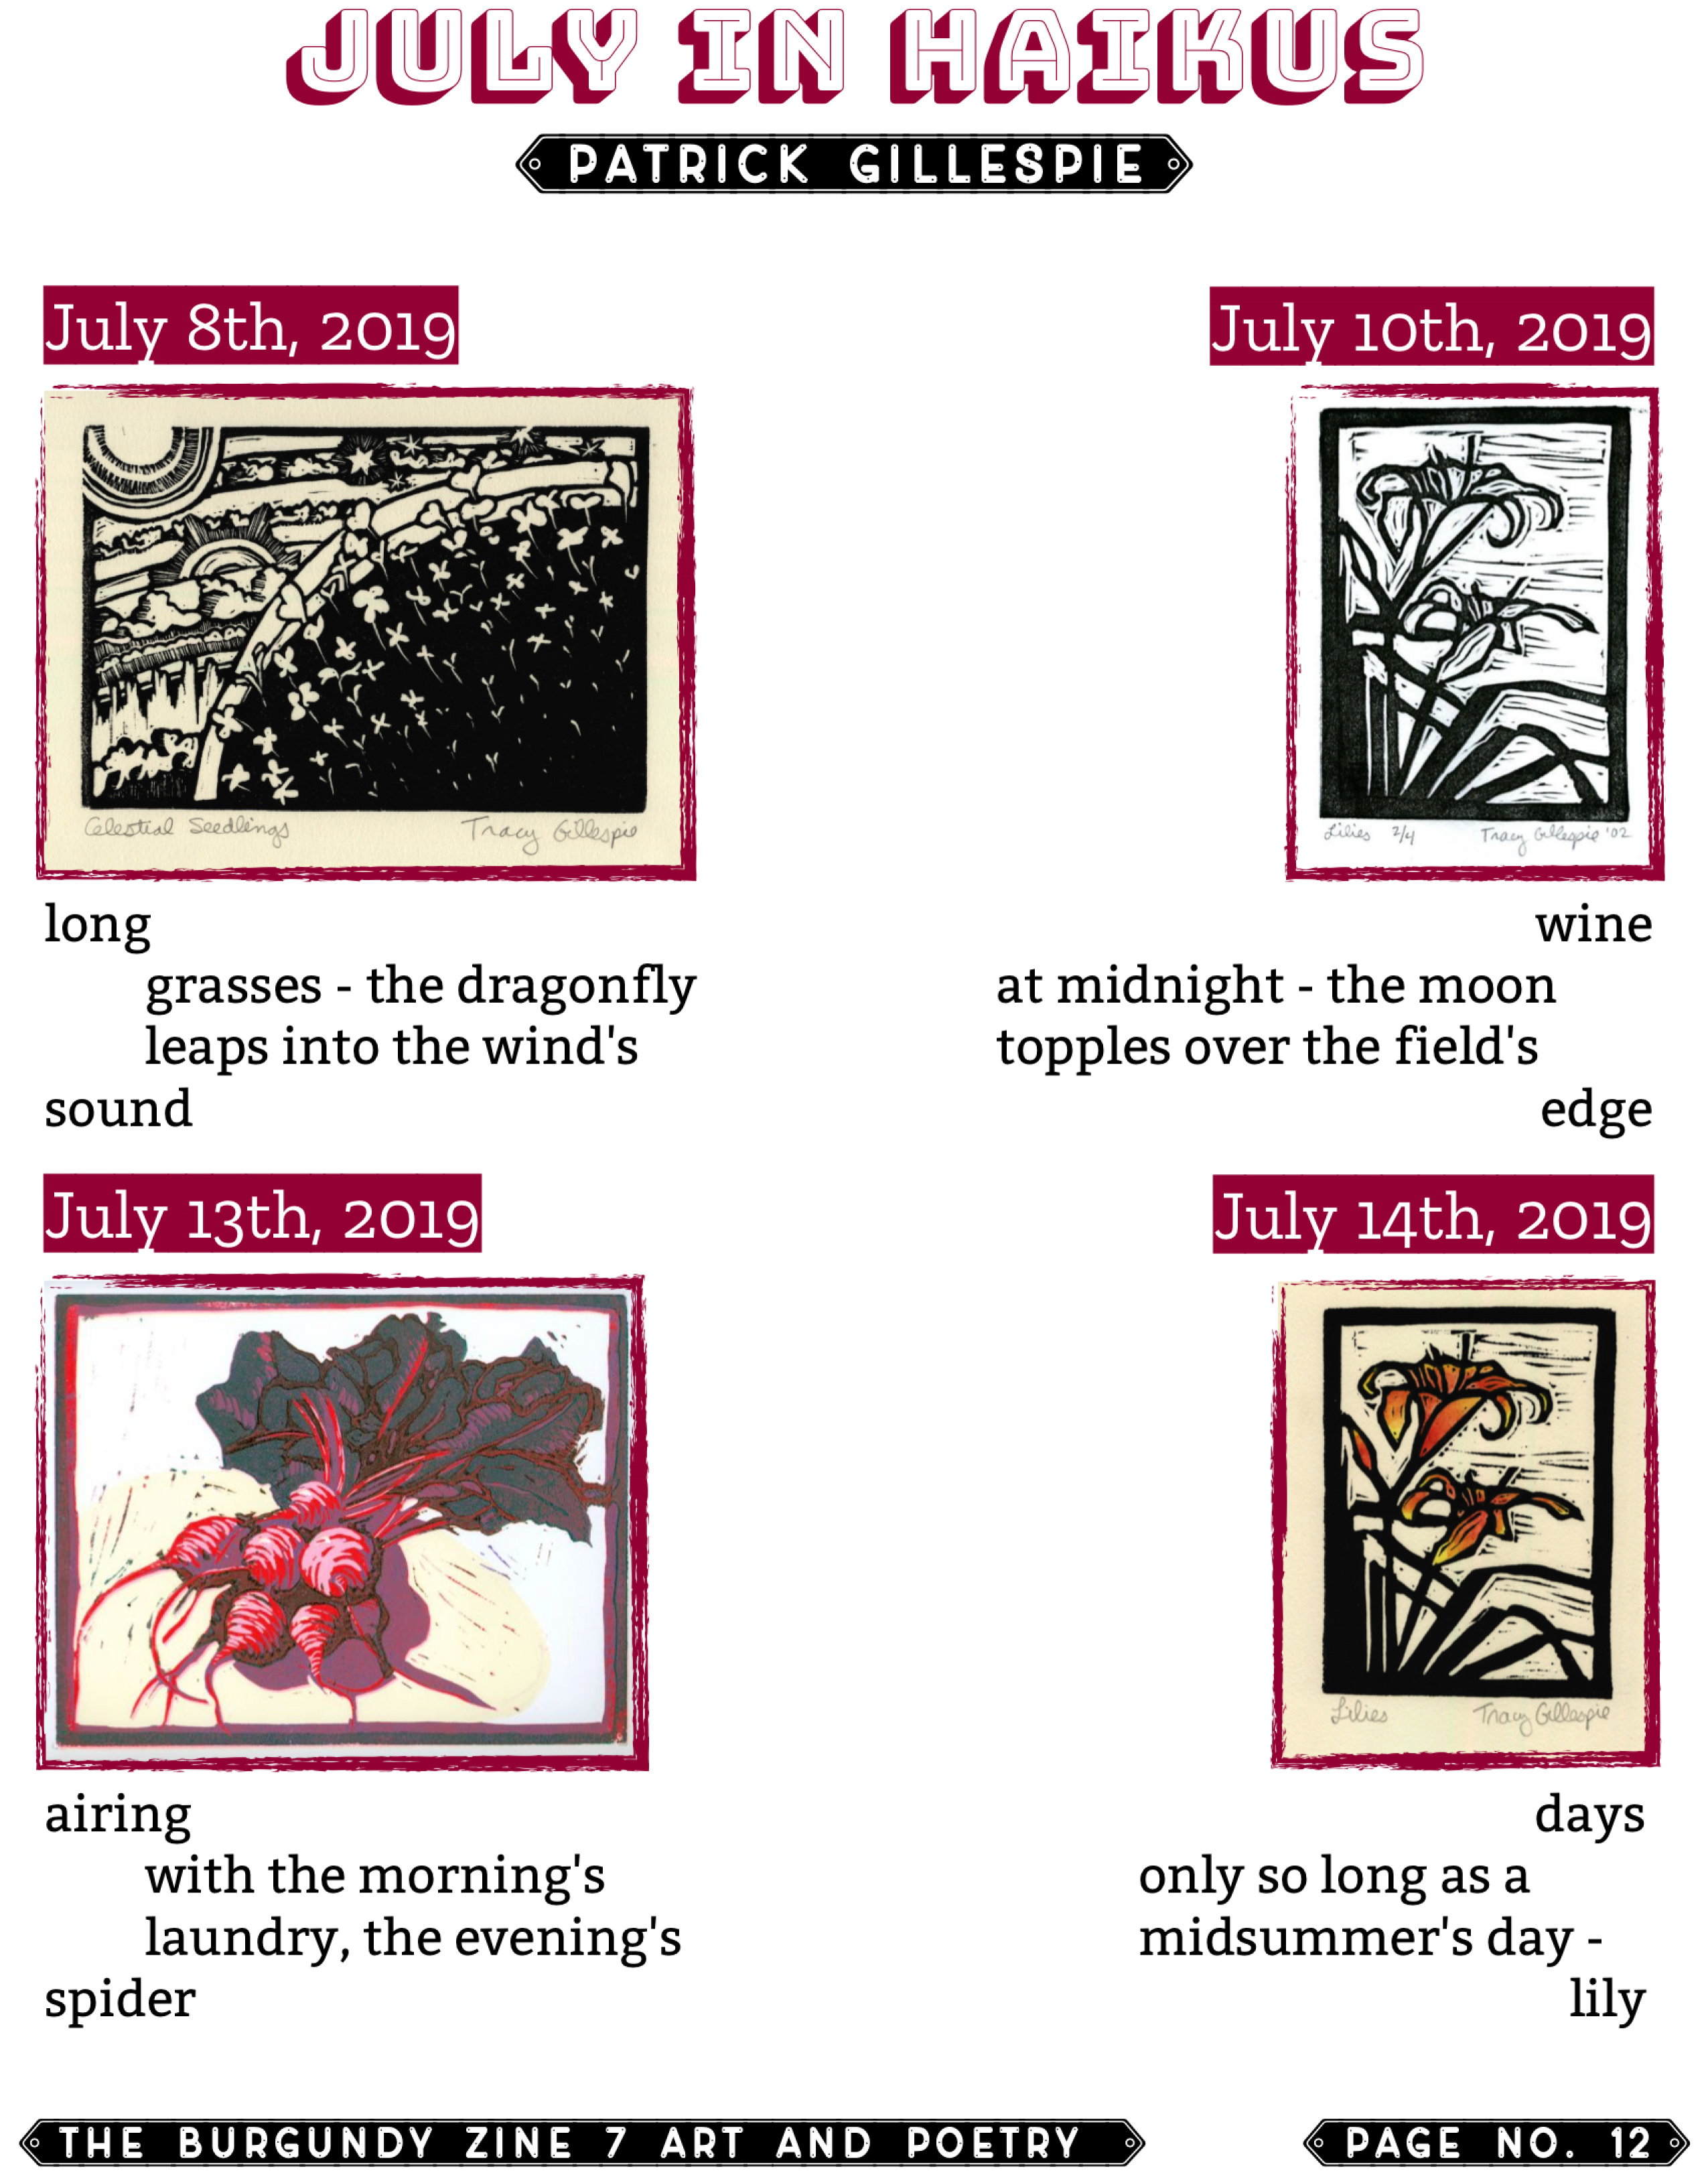 The Burgundy Zine #7 Art and Poetry 012